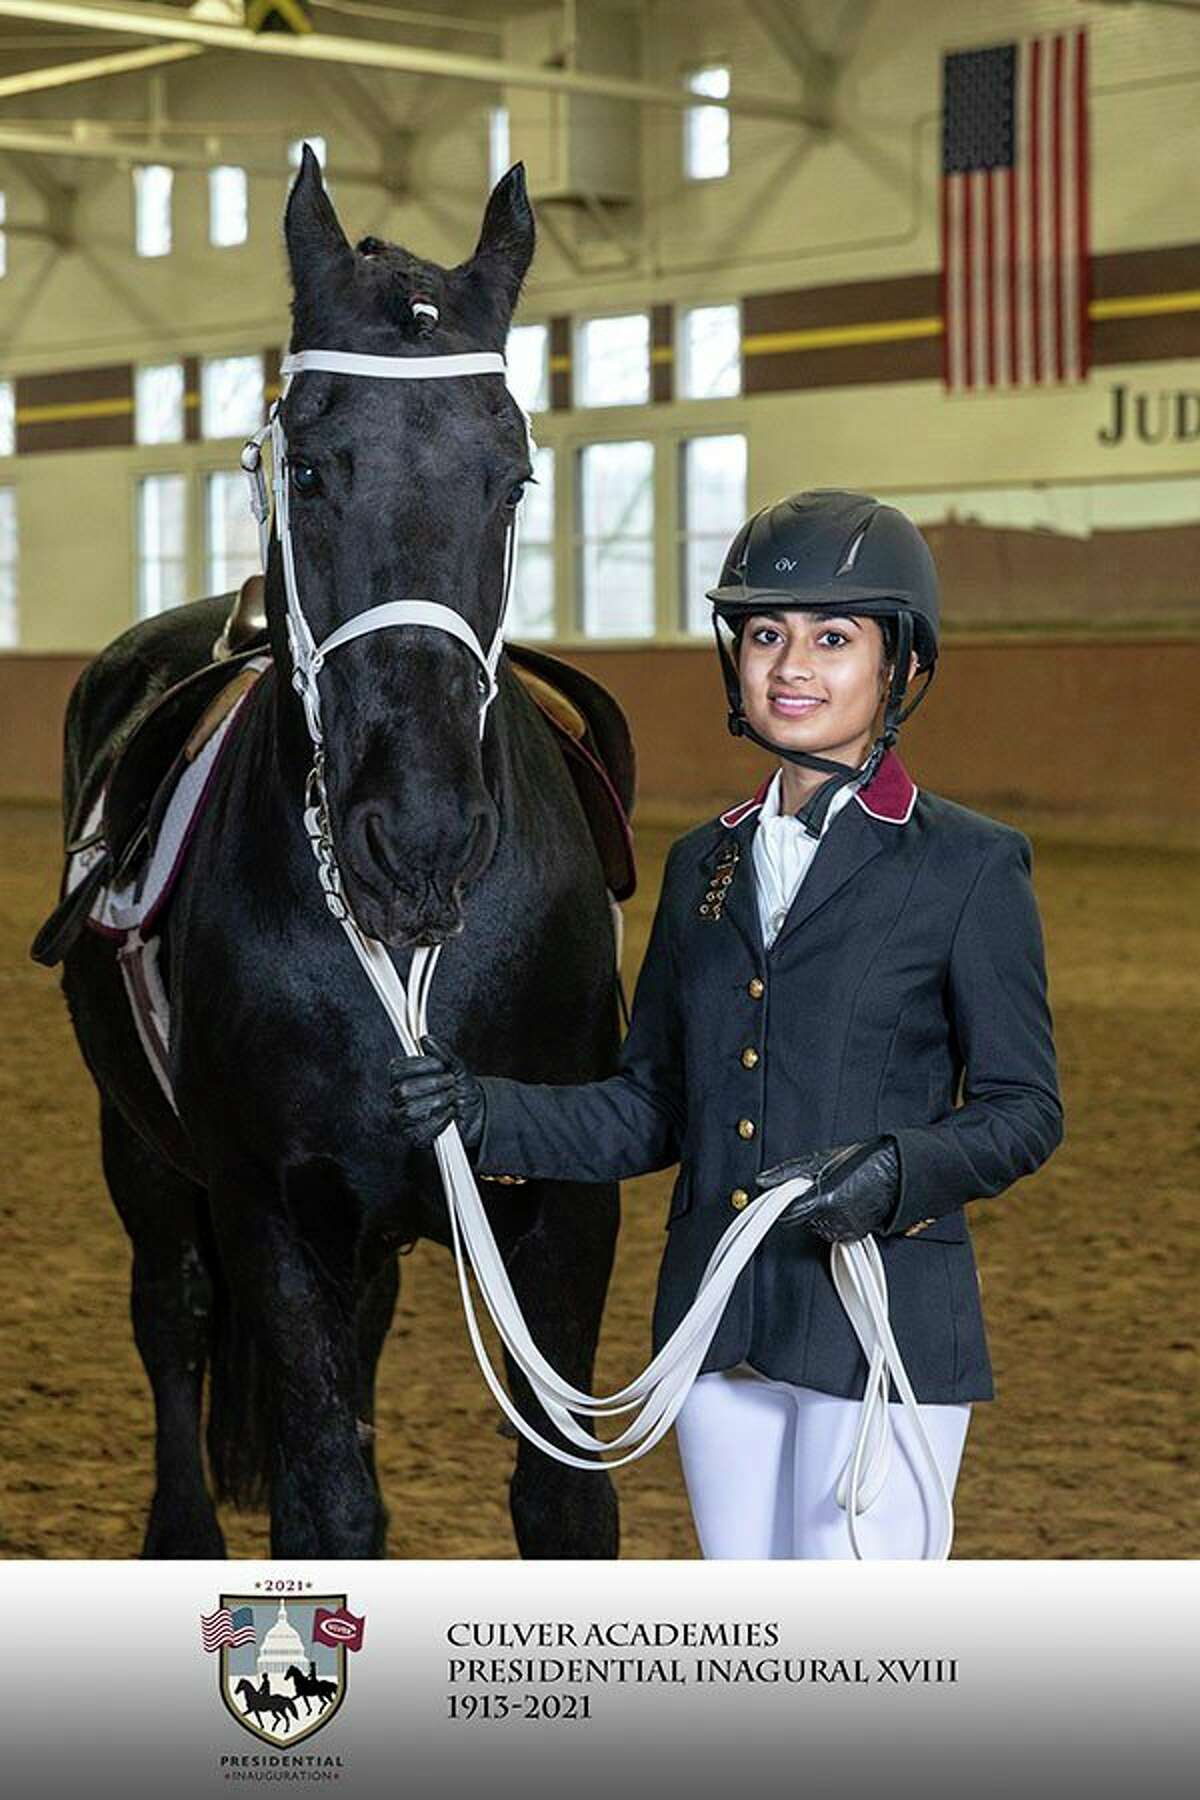 Senior Pranjal Singh, of Midland, will be riding with the Culver Academies' Black Horse Troop and Equestriennes in the Presidential Inaugural Parade Wednesday, for President-elect Joe Biden and Vice President-elect Kamala Harris. (Photo provided/Culver Academies)